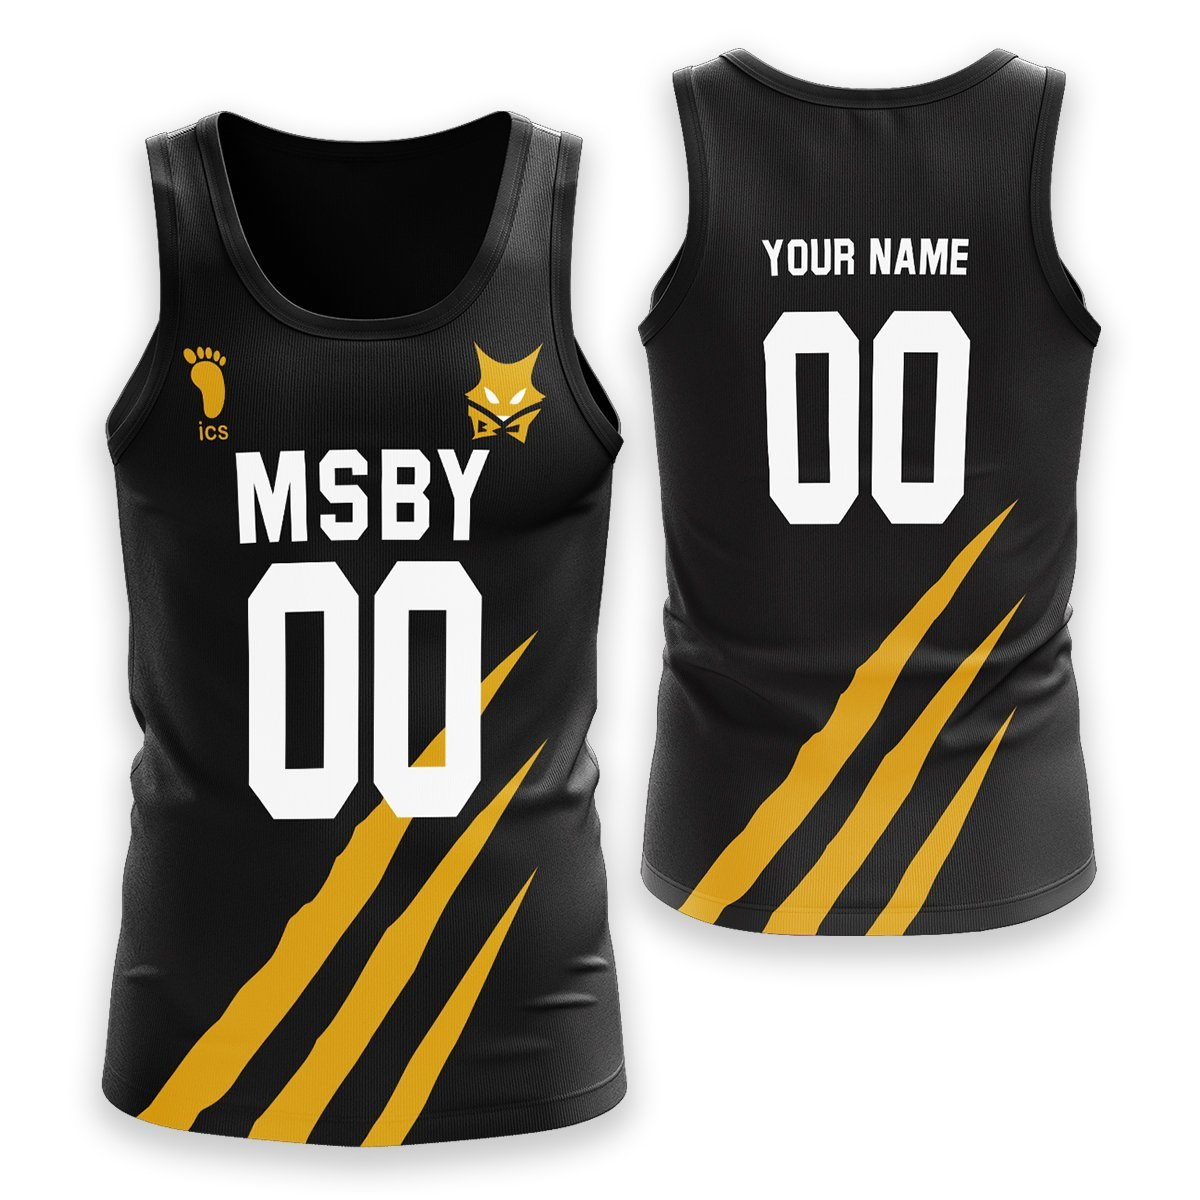 Personalized MSBY Black Jackals Unisex Tank Tops FDM3107 S Official Anime Swimsuit Merch